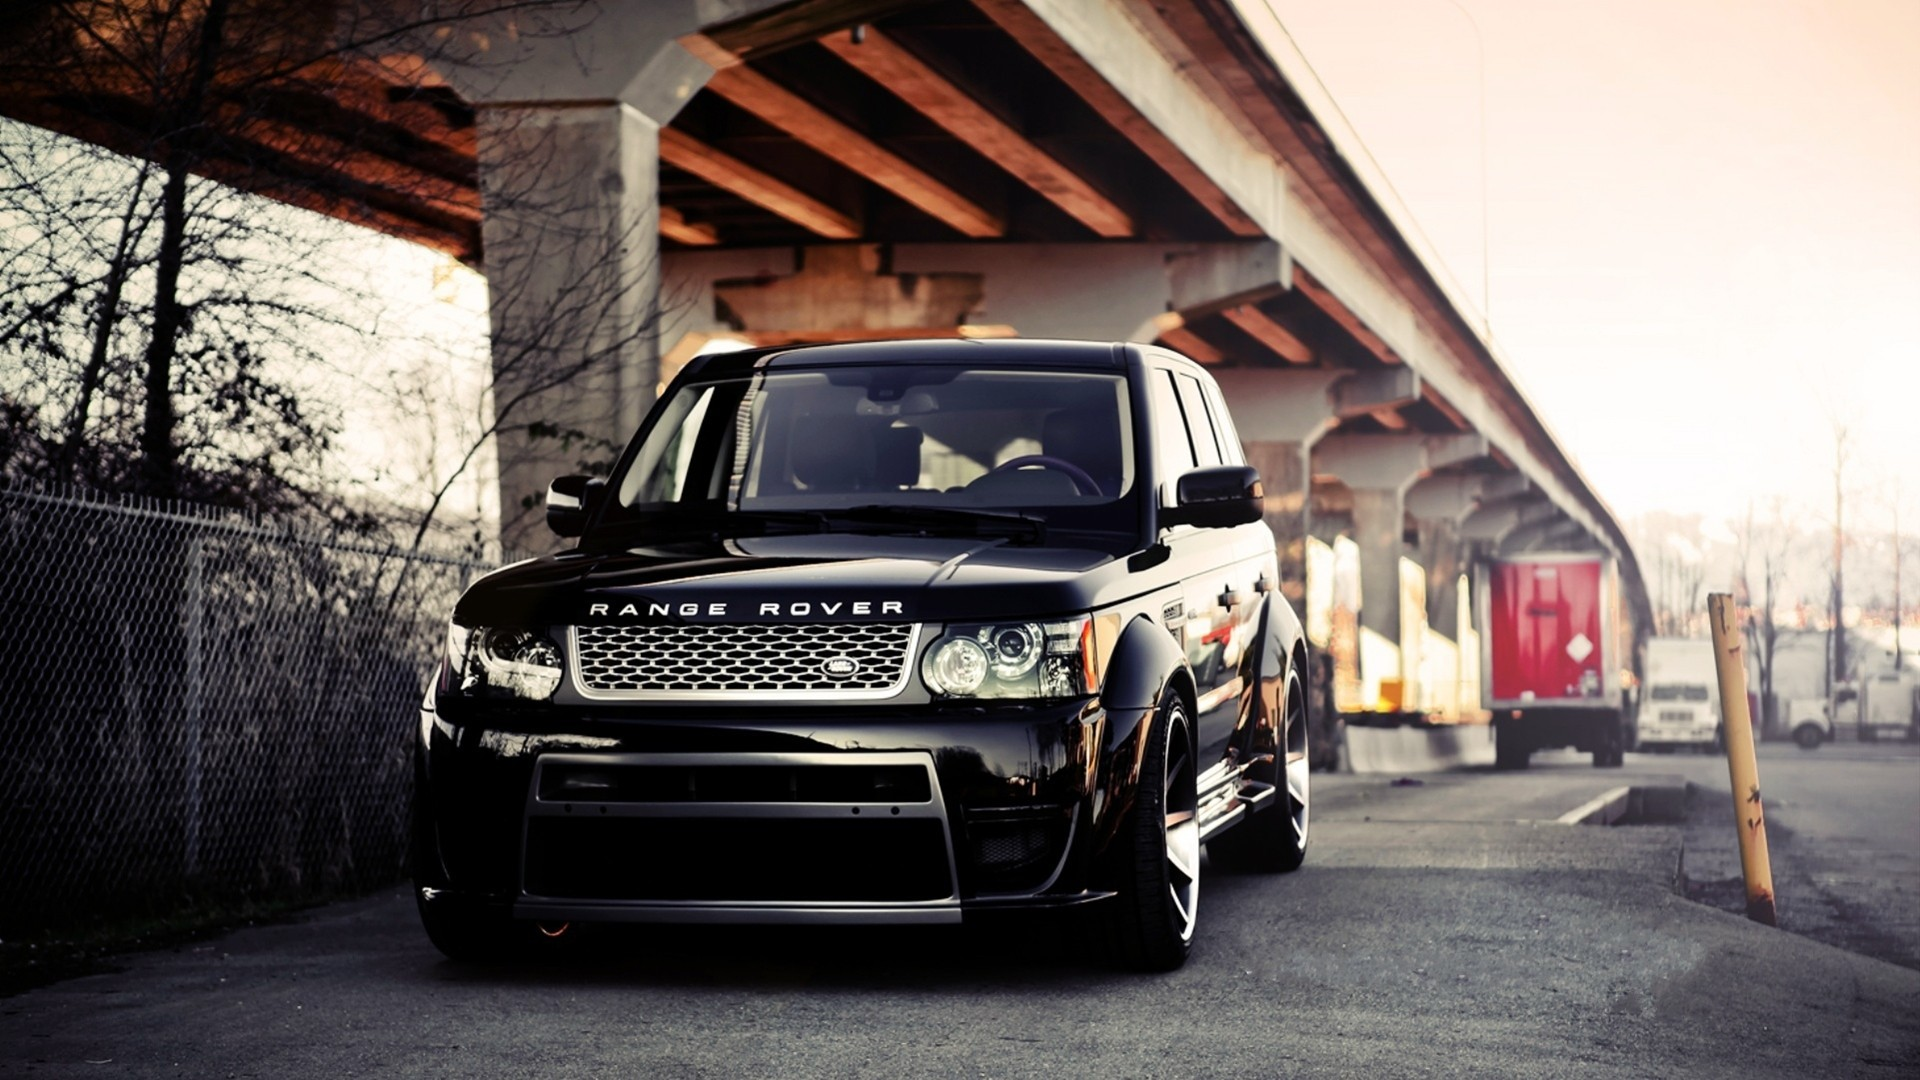 Range Rover Shining Black, HD Cars, 4k Wallpapers, Images ...